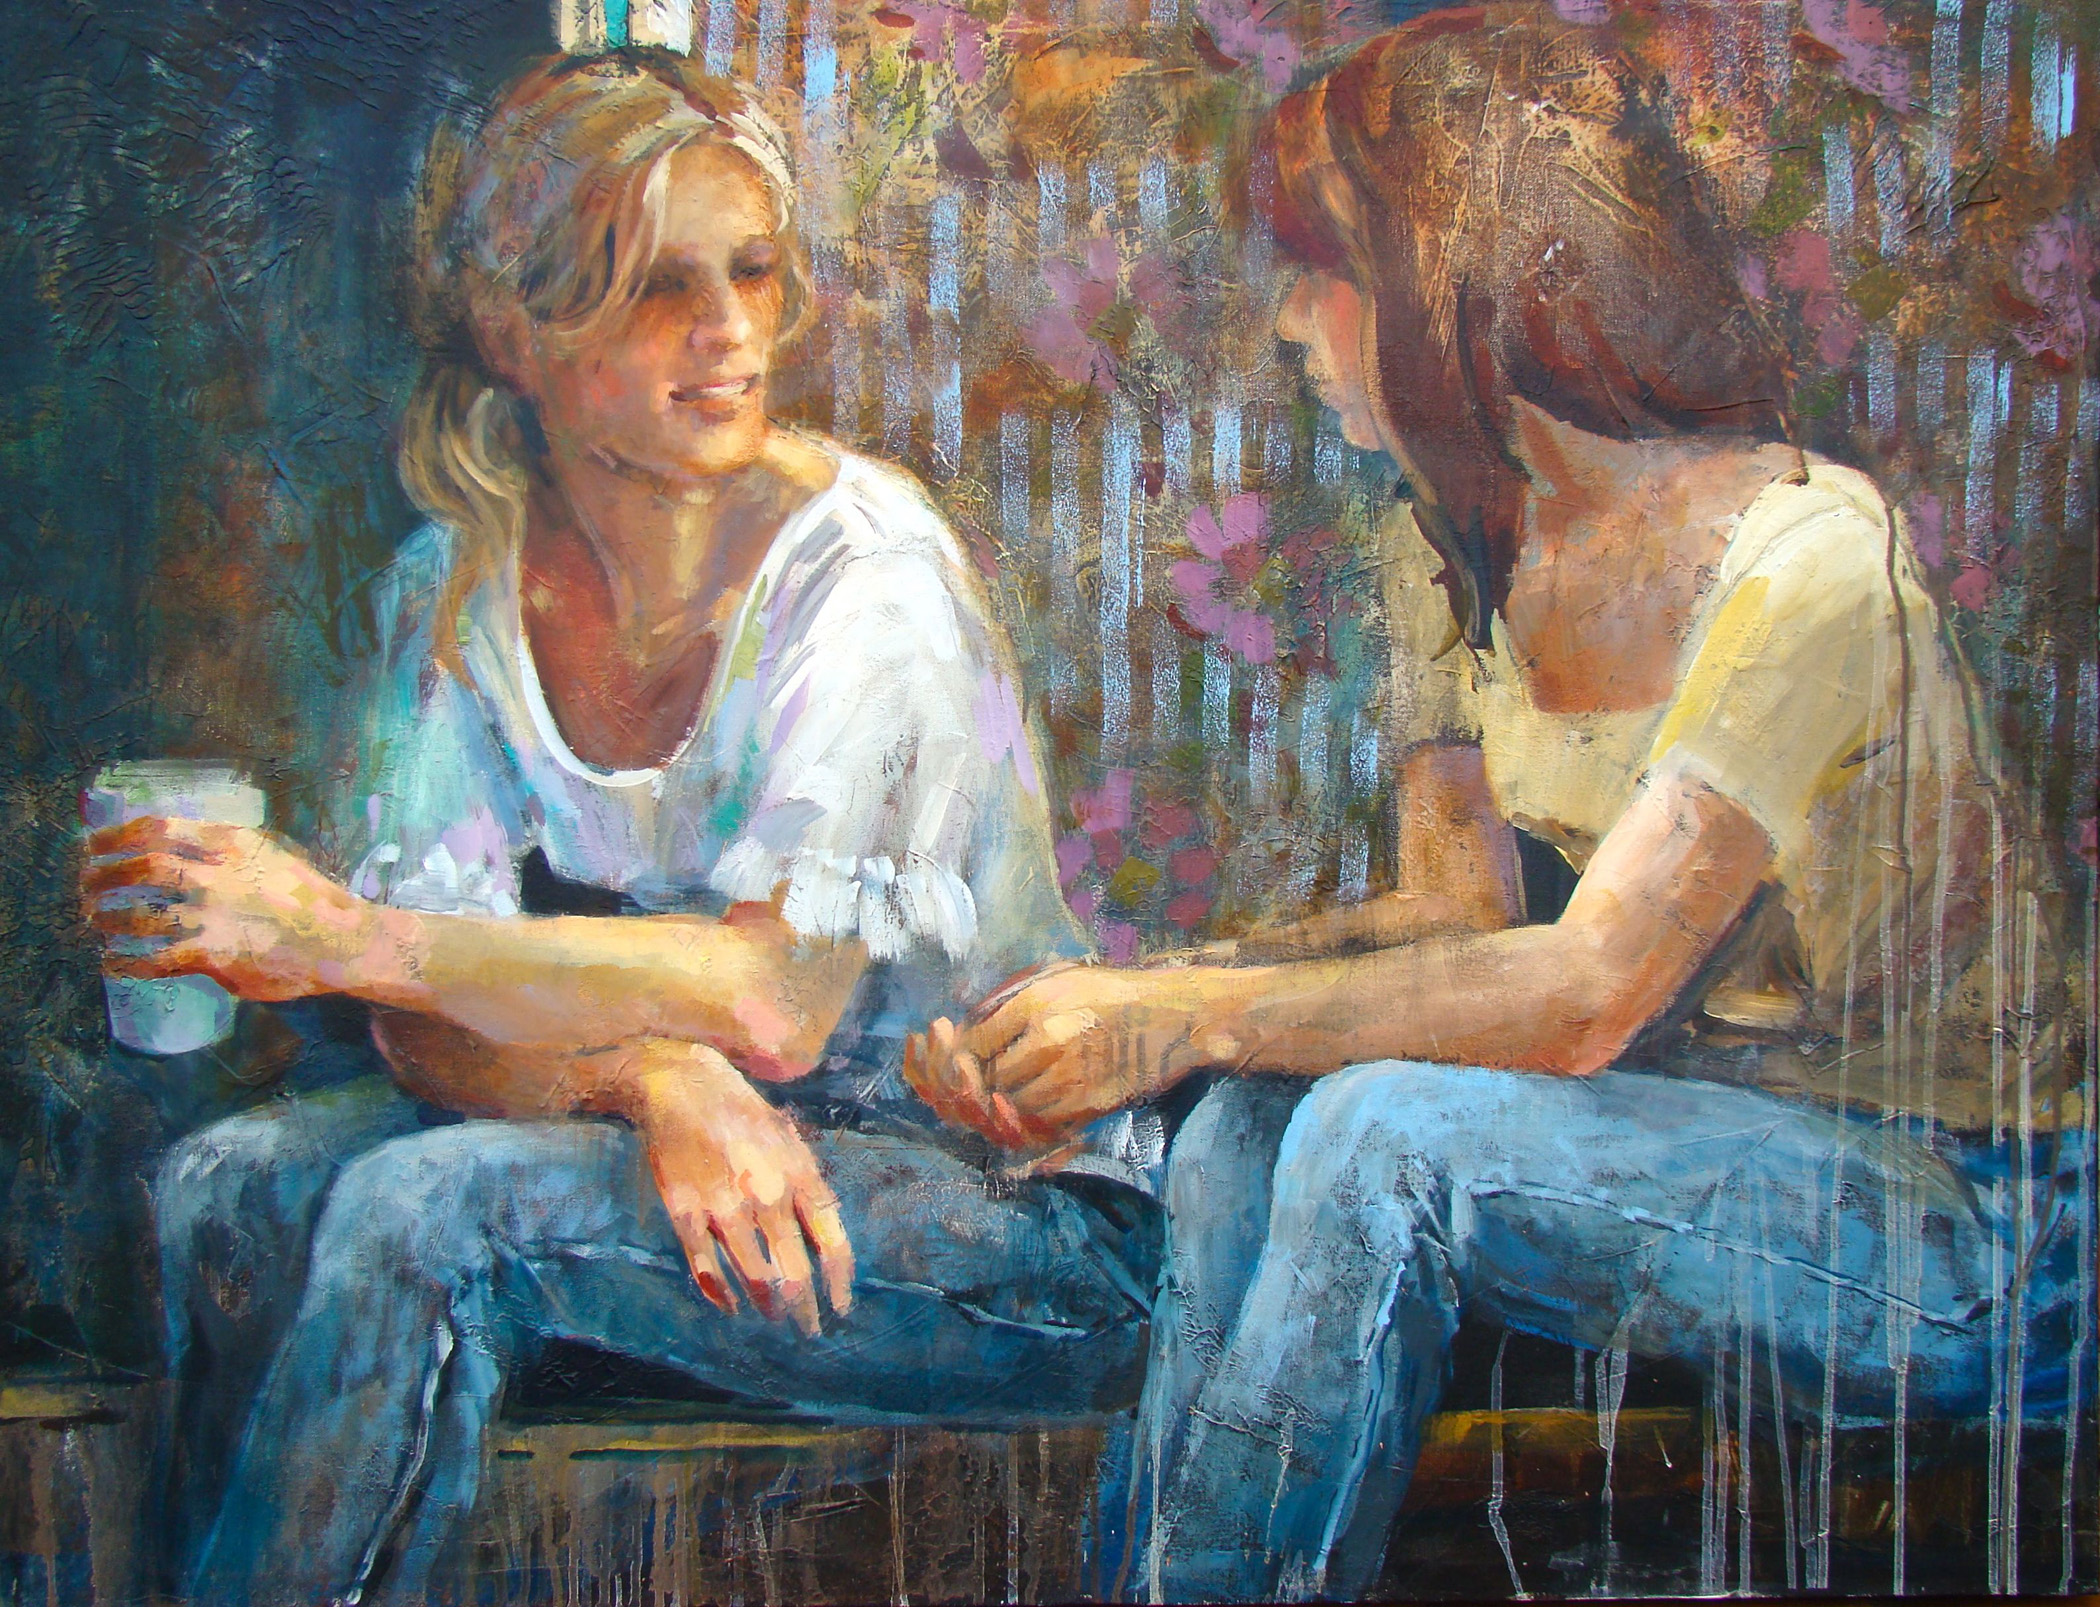 """Confiding Over Coffee"" is the work of Vera Dickerson, featured artist and juror for Whispering Muses: Inspired by Women Artists."